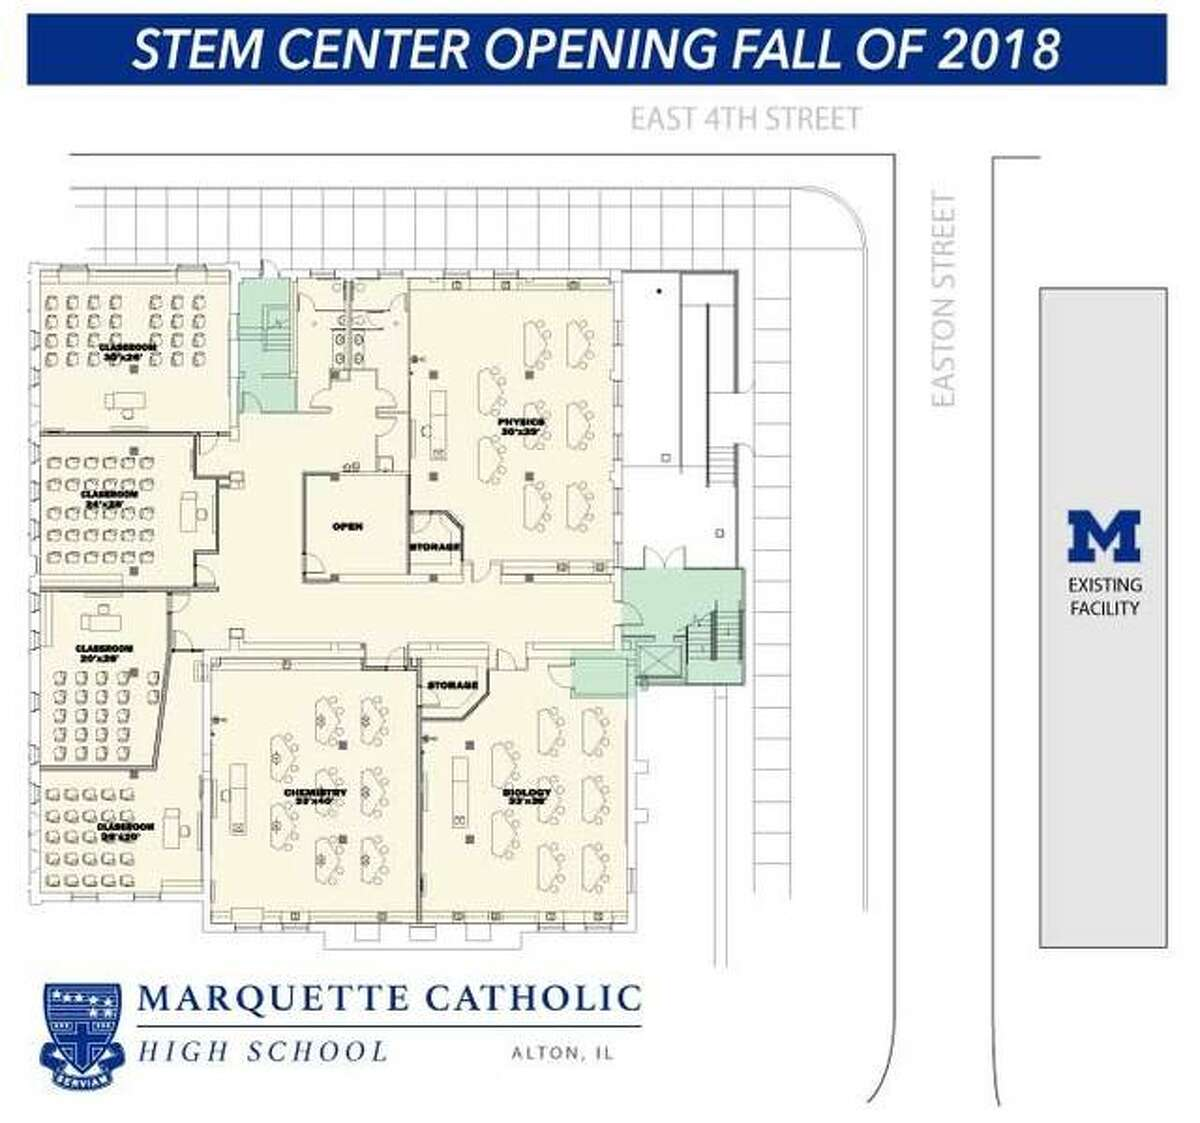 A floor plan shows the expected layout of the new facility, which will be located on the ground floor of the former Millers Mutual building. The facility is set to occupy roughly 10,000 square feet and is anticipated to open at or shortly after the start of the new school year in August.